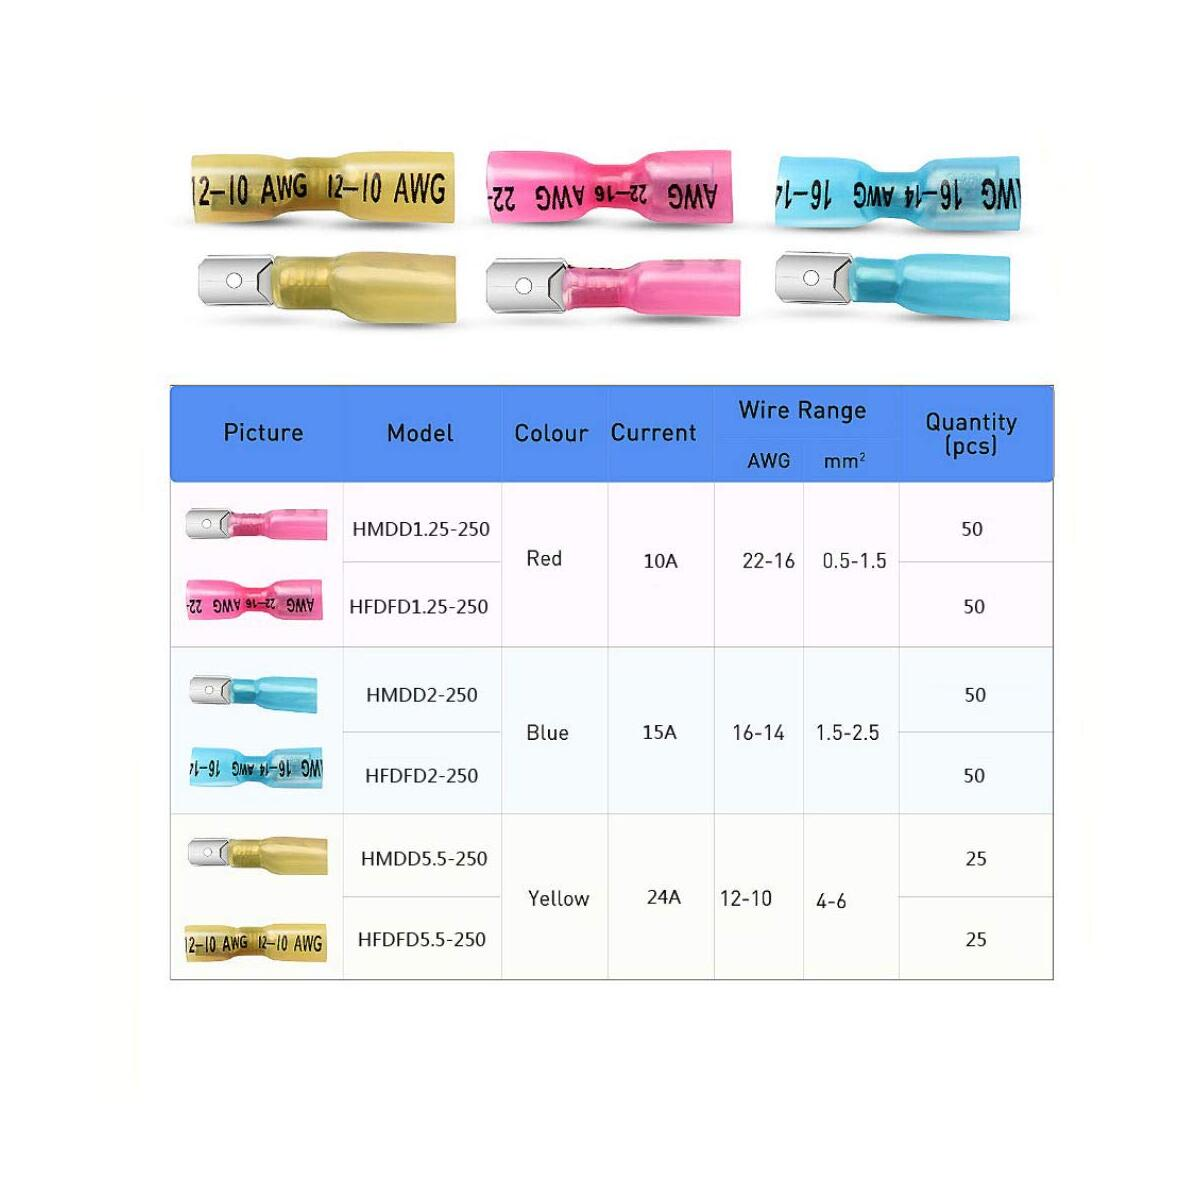 KCRTEK 250pcs Heat Shrink Wire Connectors,Electrical Connectors Female Male Spade Terminals Electrical Connector Kit